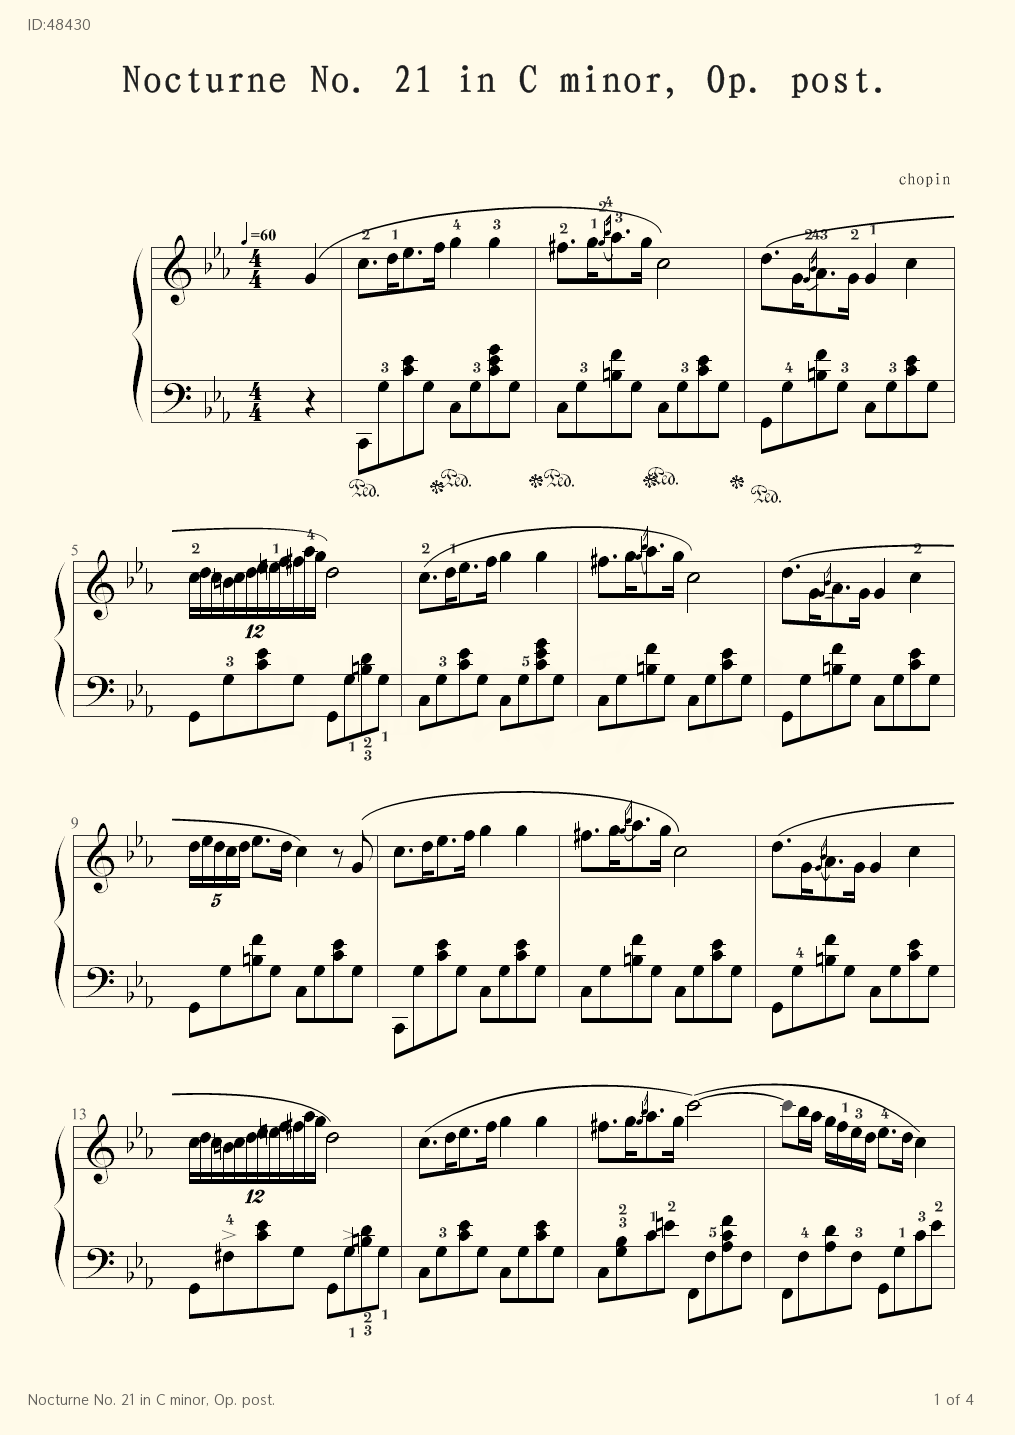 Nocturne No. 21 in C minor, Op. post. - chopin - first page